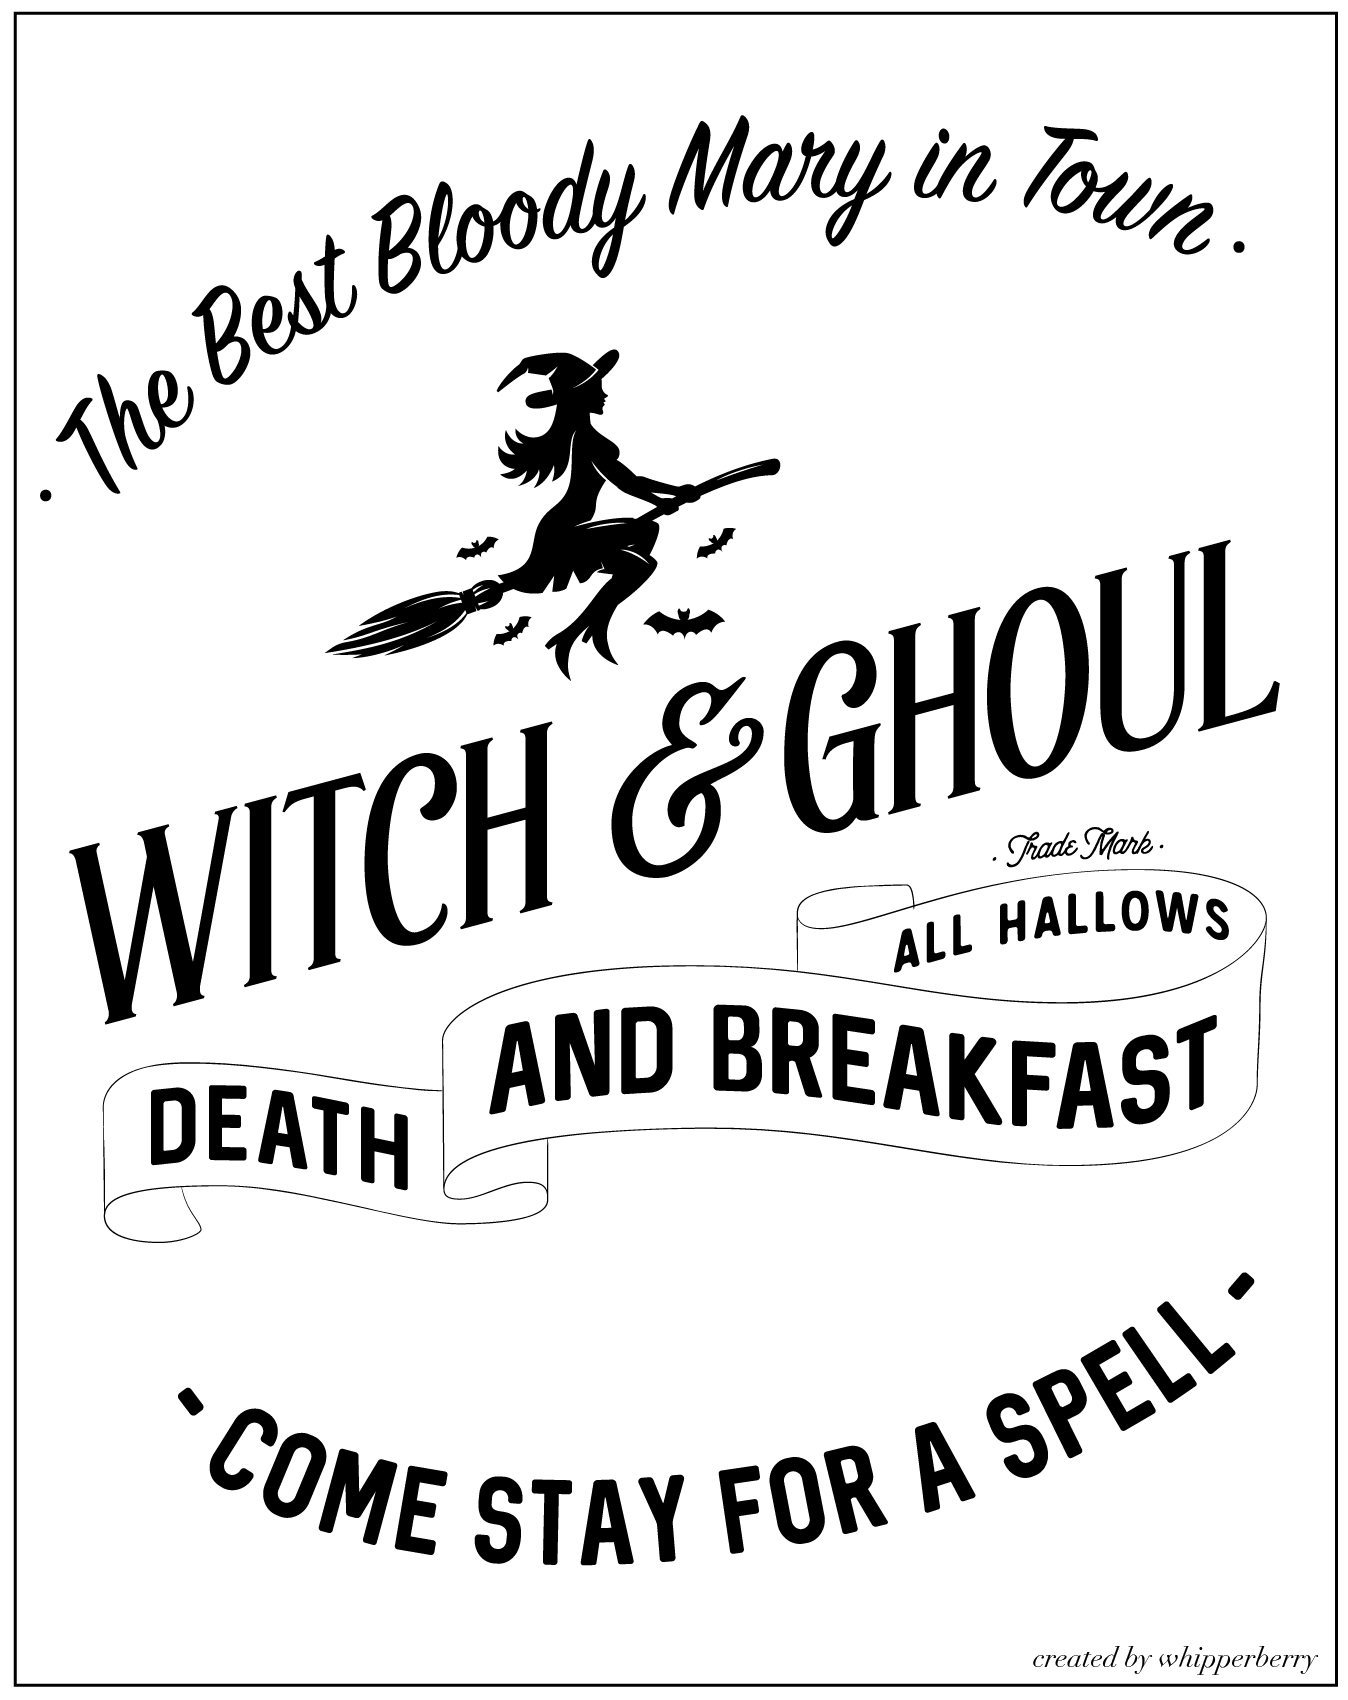 Travel back in time with this fun vintage paper roll sign created by WhipperBerry for Halloween. Witch and Ghoul Death and Breakfast sign available as an SVG file for cutting machines or a printable file for FREE!